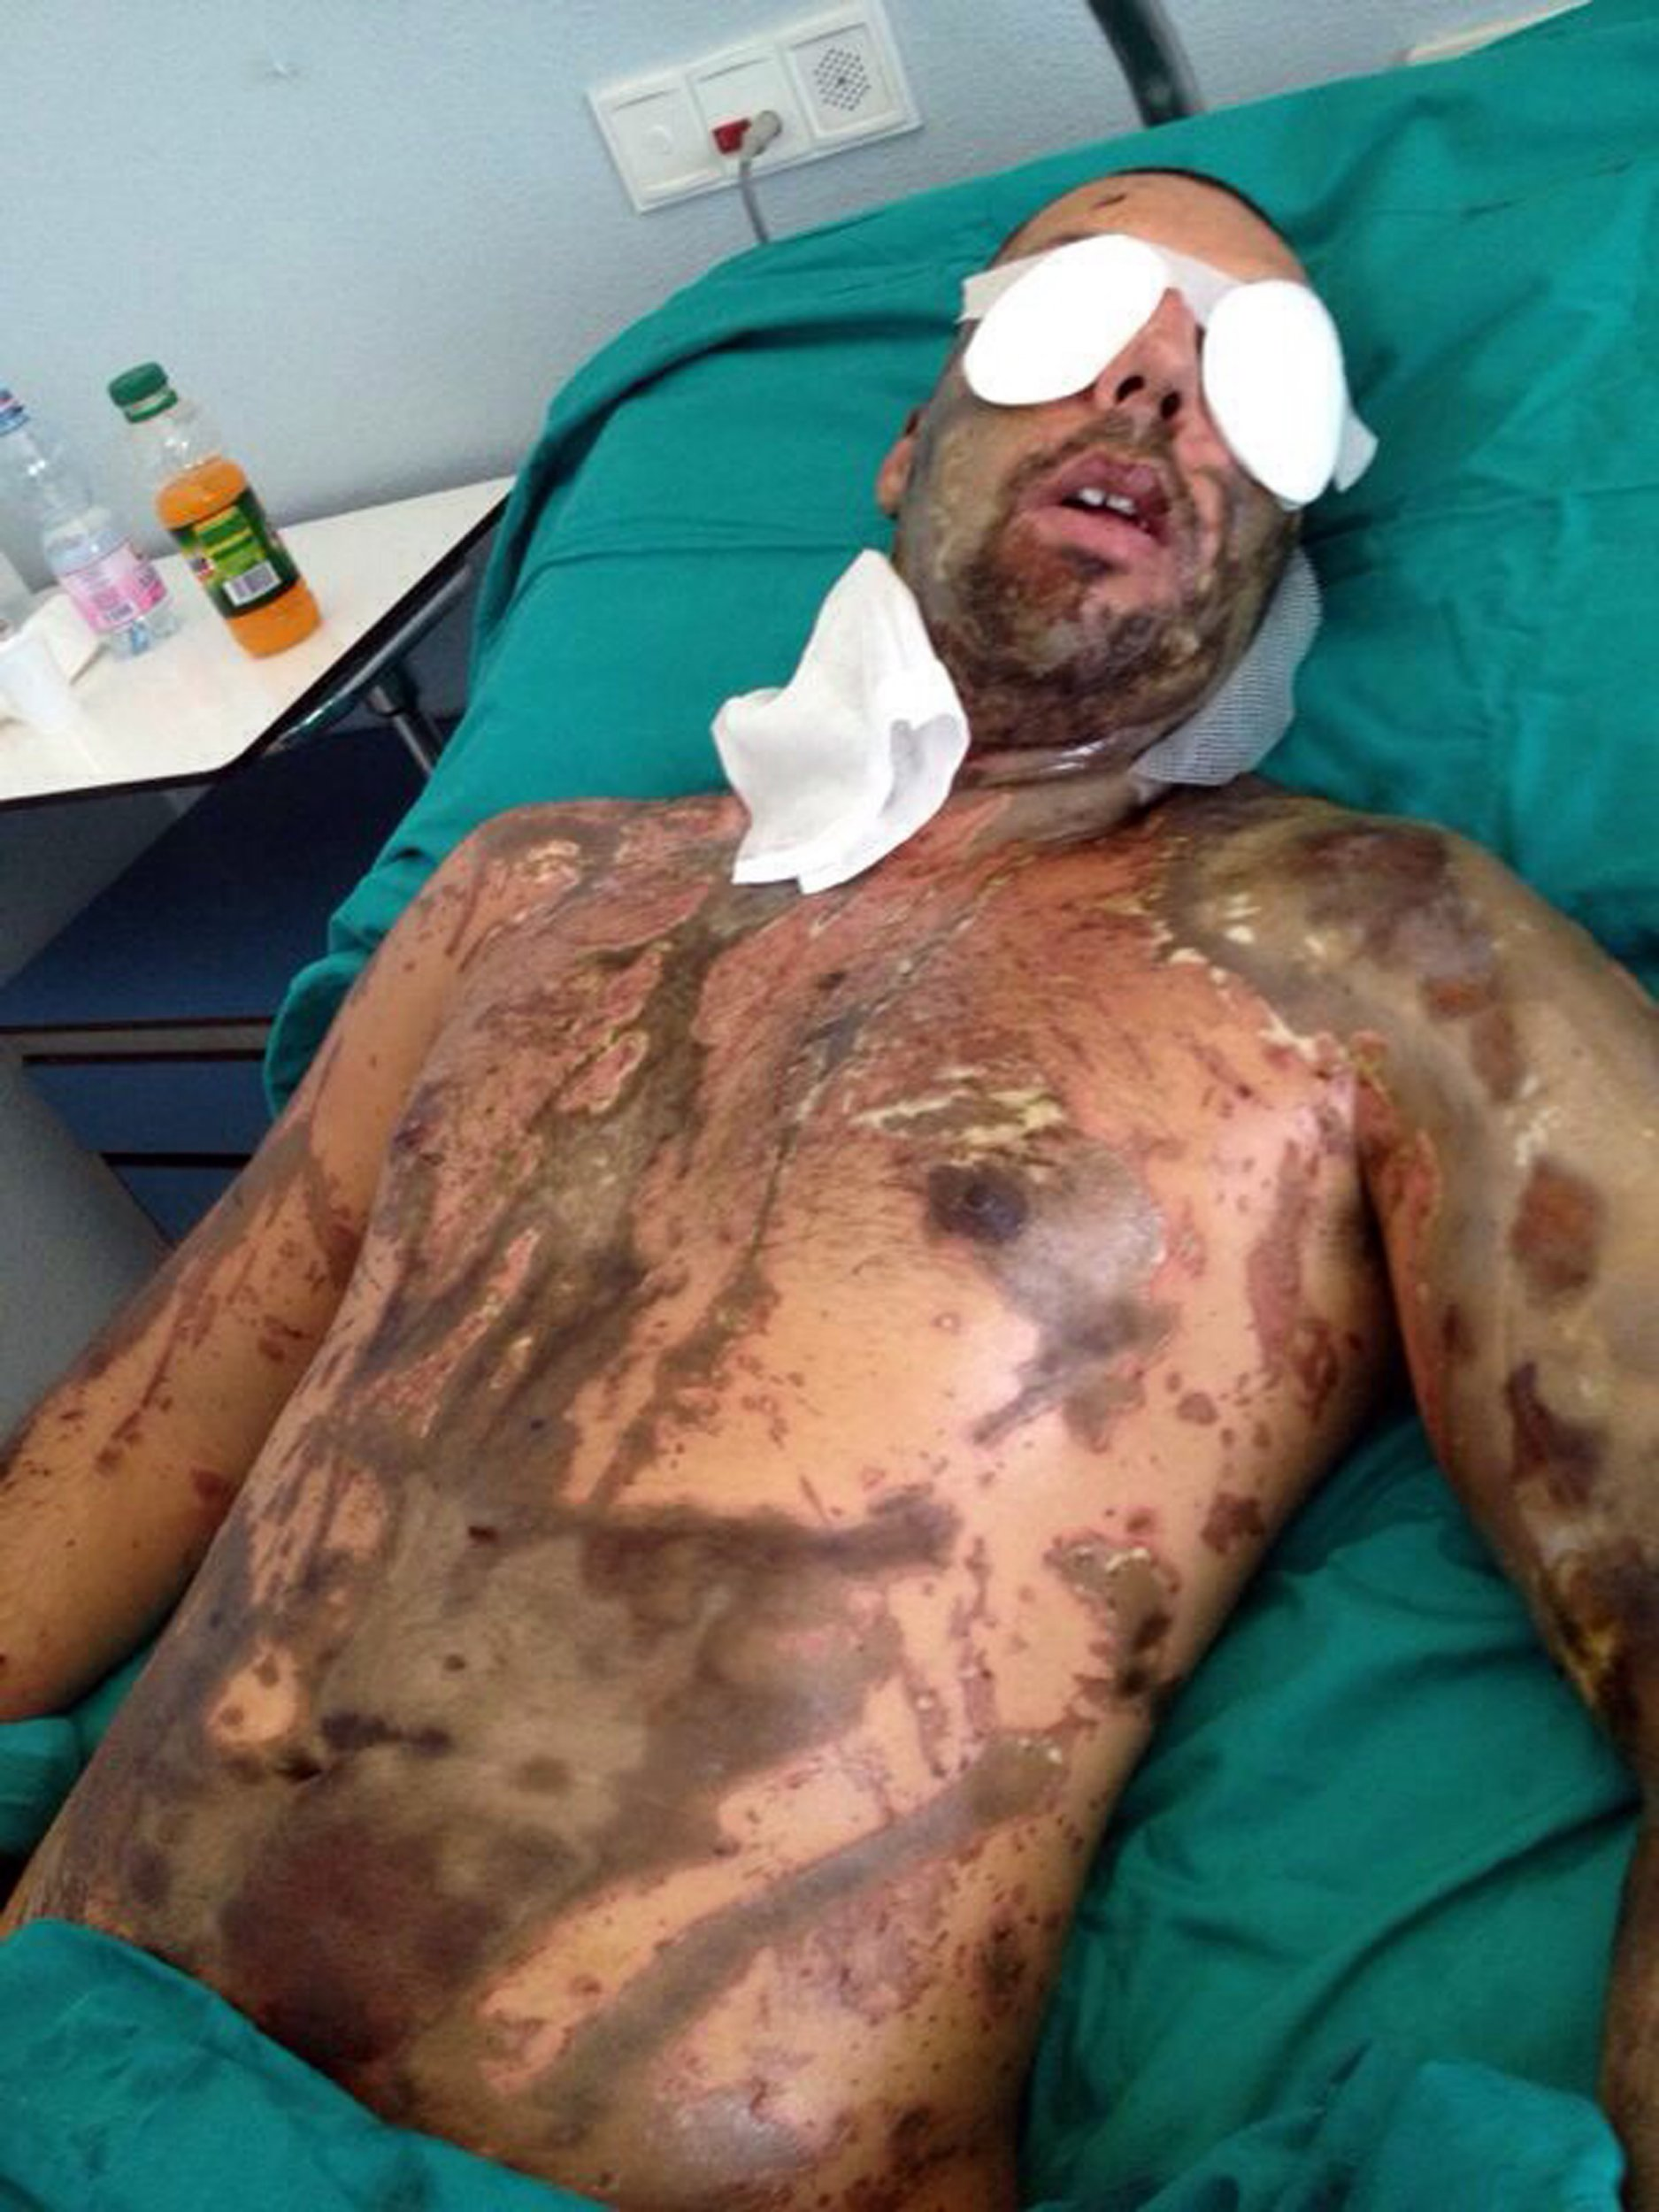 Pic from Caters News - (Pictured:William Pezzulo, 33 in horrific condition in hospital after the attack.) - An acid attack survivor has released horrific images of him just days after he claims his ex-girlfriend threw a BUCKET of acid in his face. William Pezzulo, 33, became the victim of an acid attack when his ex-girlfriend, Elena Perotti, and her accomplice, Dario Bertelli, threw a bucket of acid over him. Despite over three months in hospital and 33 surgeries, the damage the acid caused left William blind in his left eye, with blurred vision in his right eye, loss of scalp and lost the earbuds in his ears. Now, for the first time and with acid attacks on the rise in the UK, William is releasing the photographs of his attack on the evening of September 19, 2012, to raise awareness of the impact the attack has caused on his life. SEE CATERS COPY.